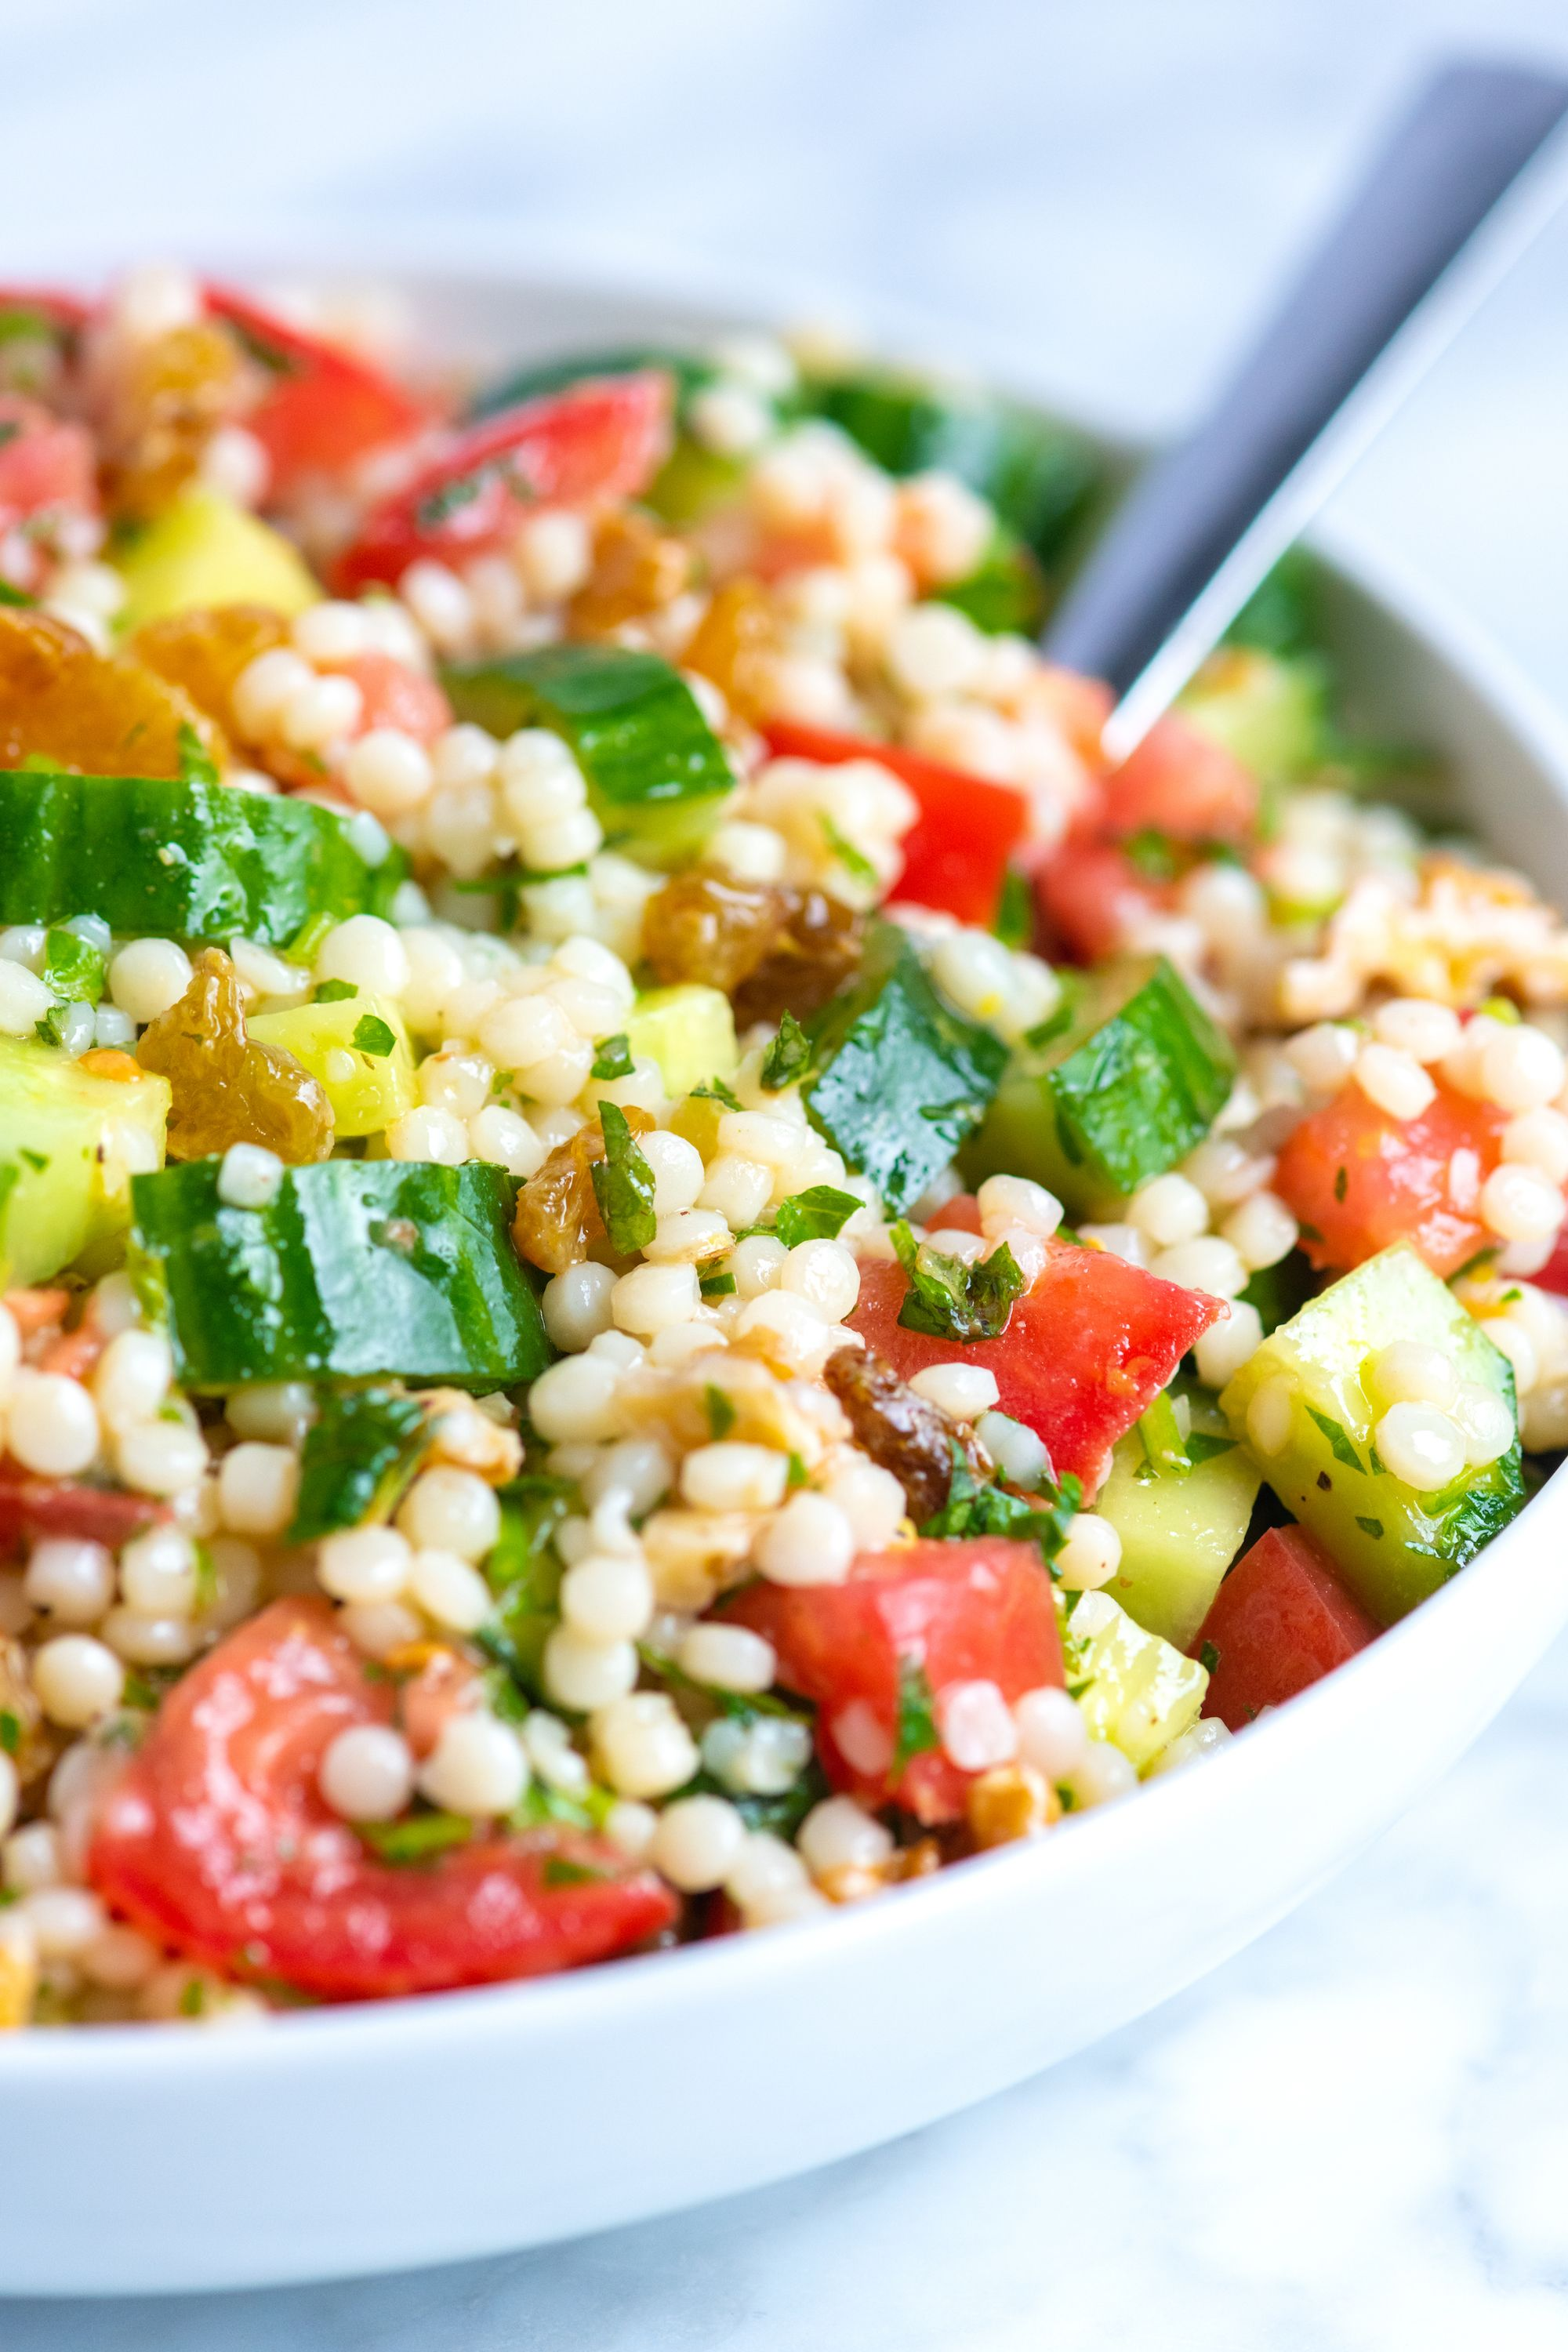 Our Favorite Lemon Herb Couscous Salad